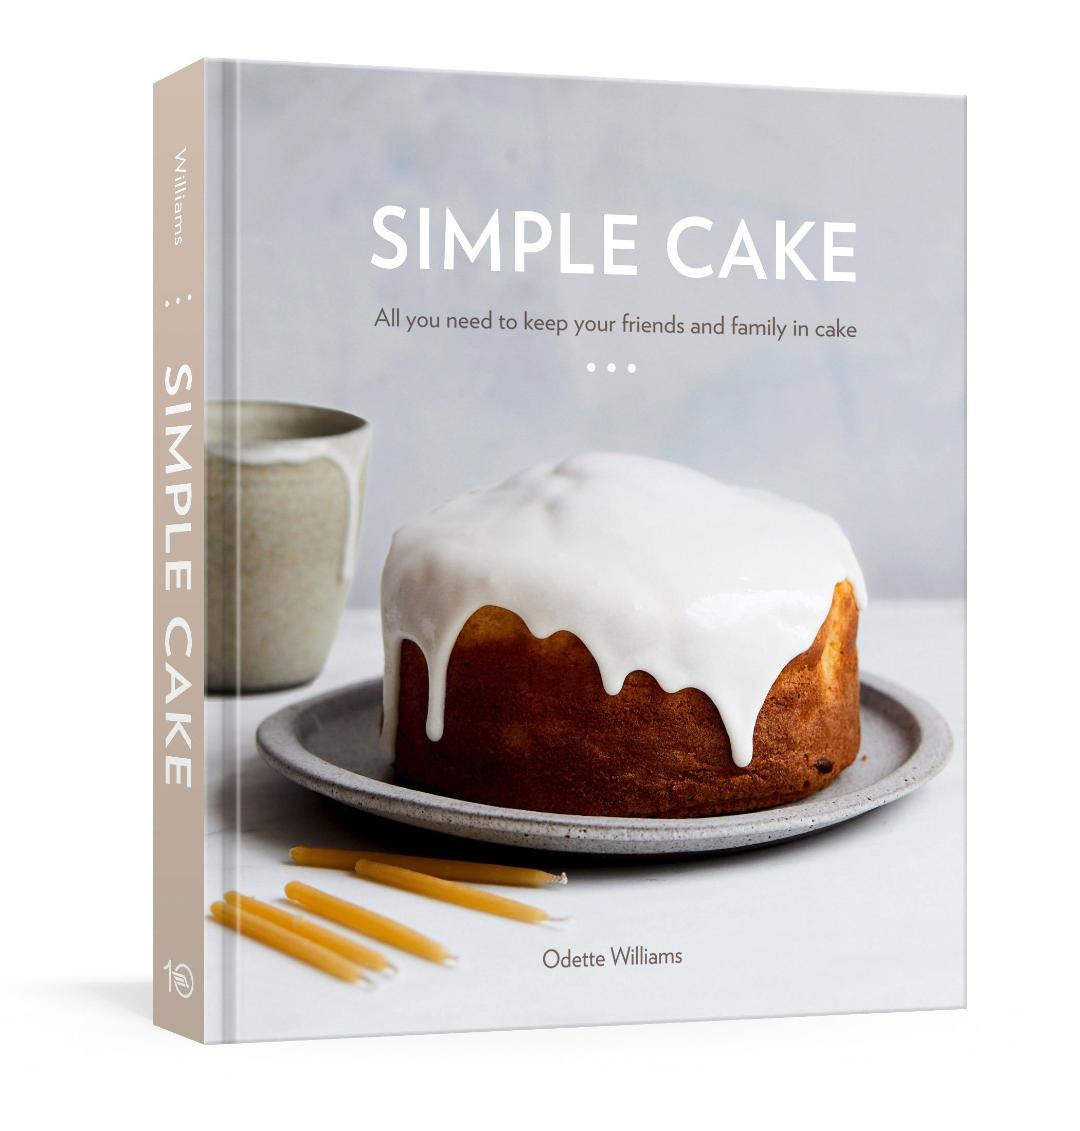 SIMPLE CAKE by ODETTE WILLIAMS #cakebook #cookbook #cakerecipes #modernbaking #easybaking